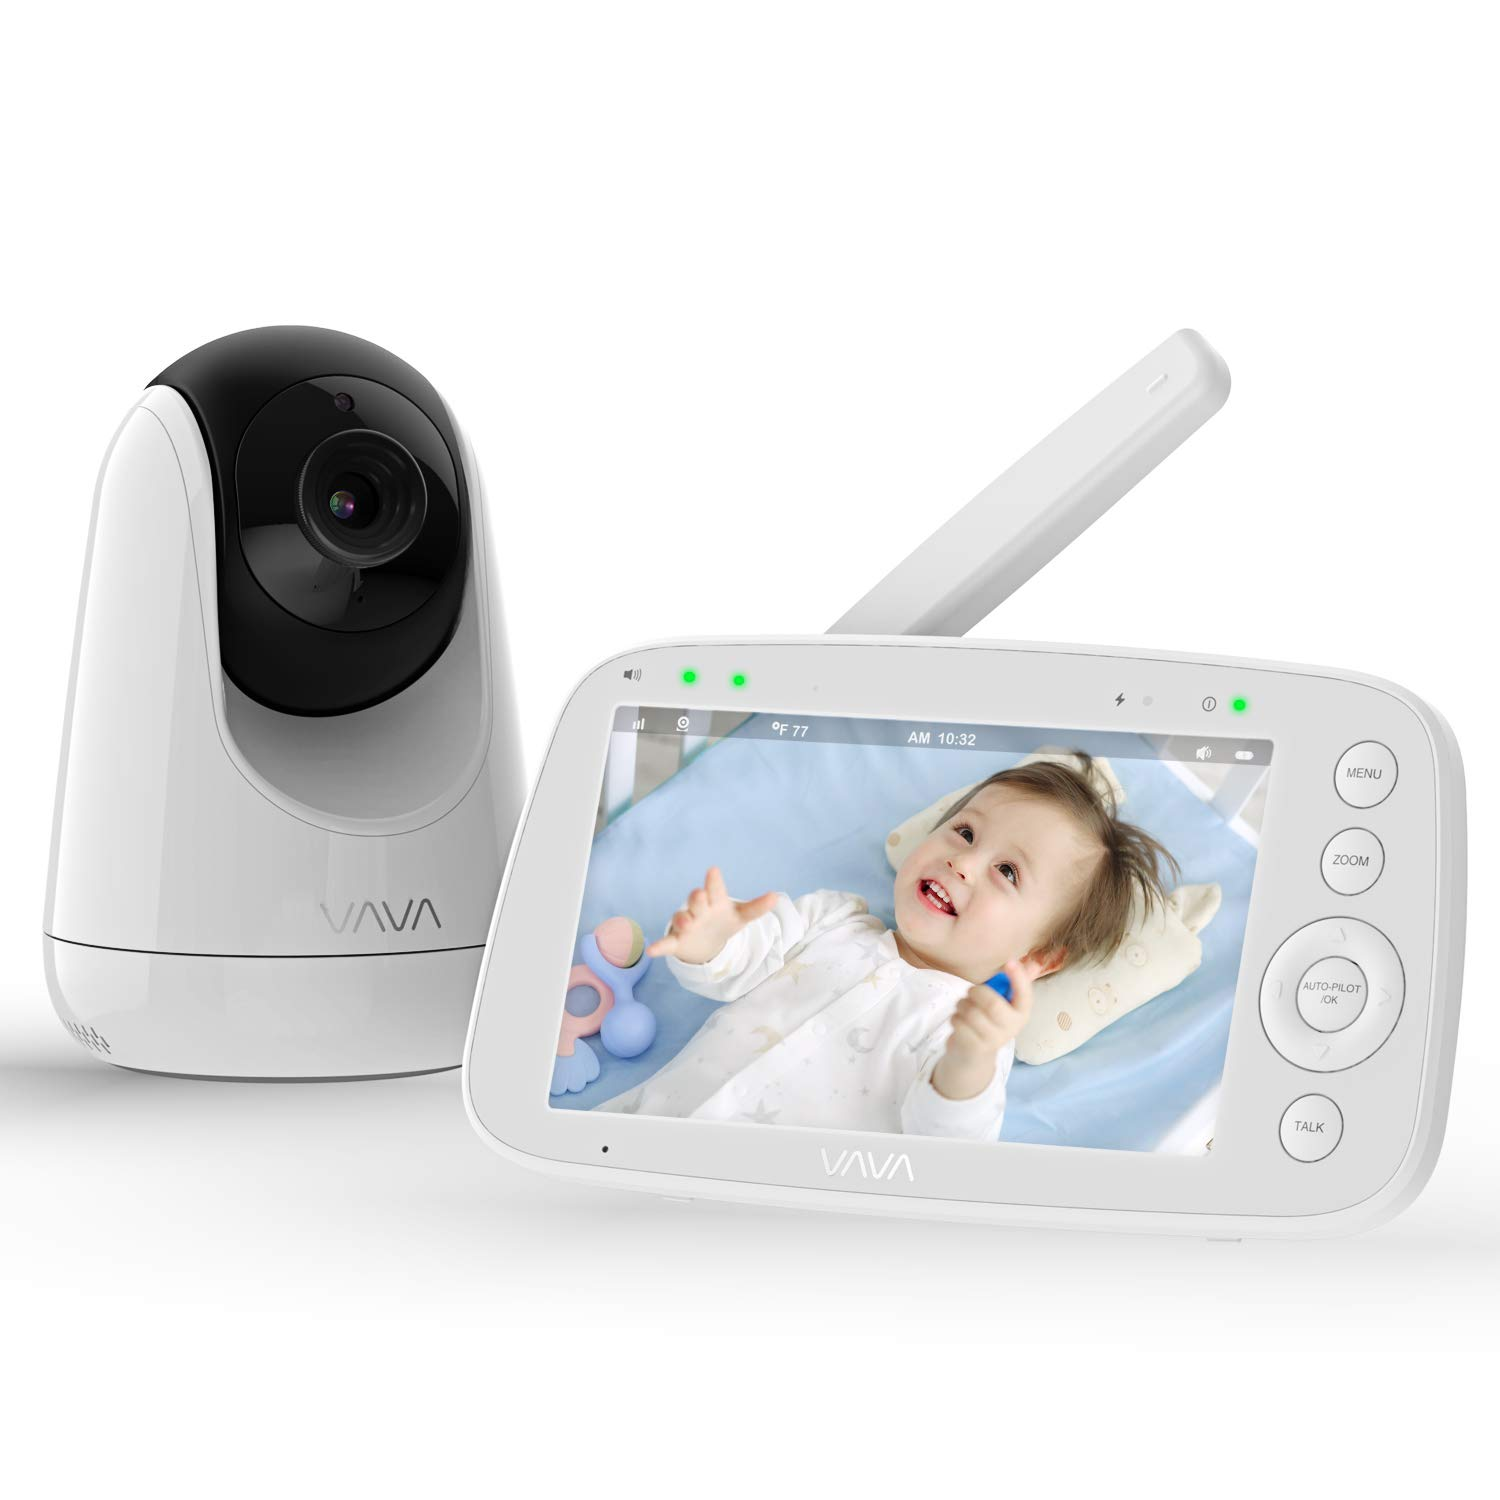 Baby Monitor, VAVA 720P 5'' HD Display Video Baby Monitor with Camera and Audio, IPS Screen, 480ft Range, 4500 mAh Battery, Two-Way Audio, One-Click Zoom, Night Vision and Thermal Monitor V1.1 Version